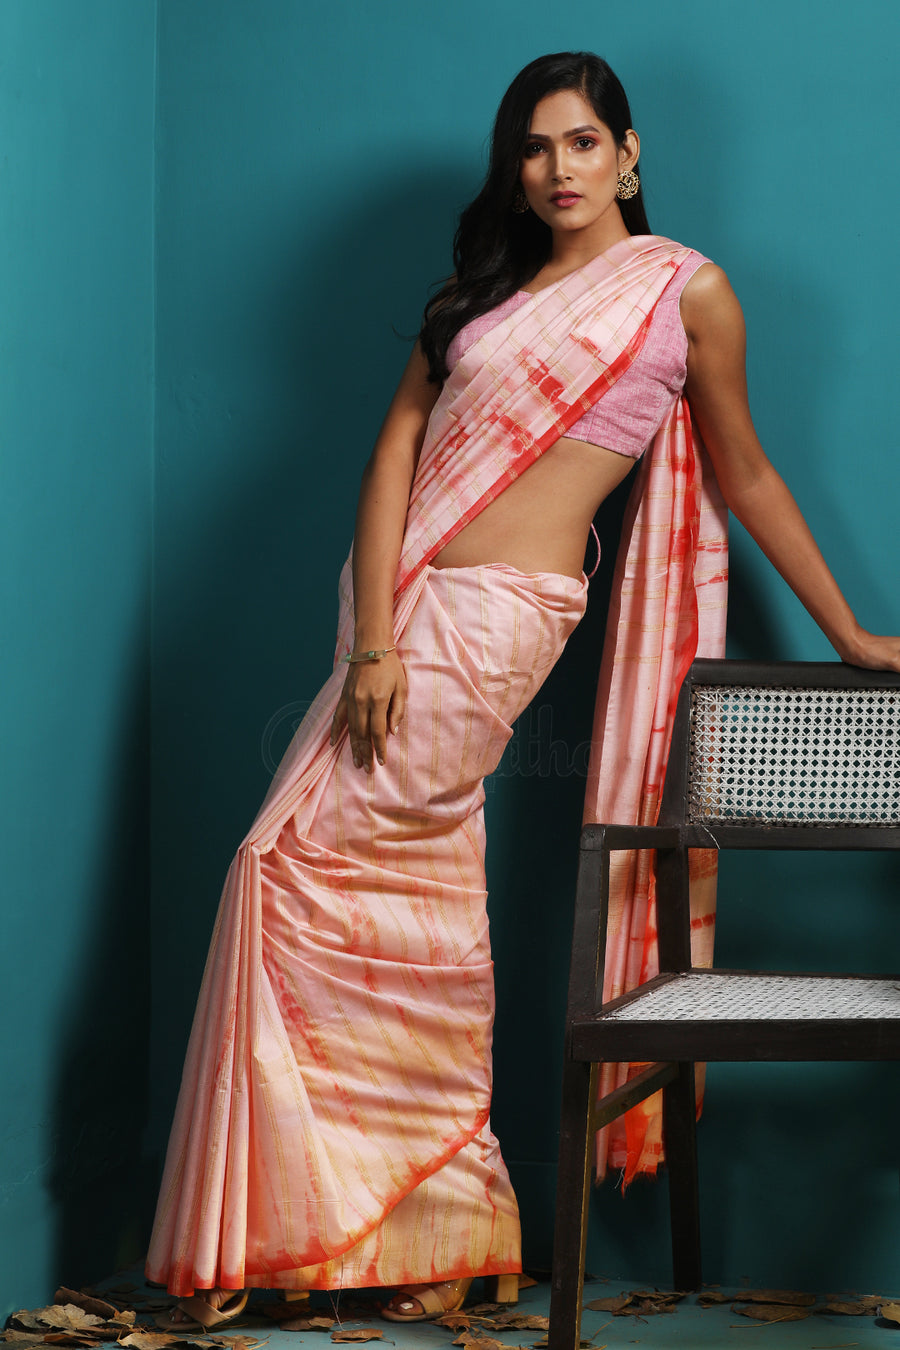 Baby Pink Blended Kota Saree With Red Shibori Highlights & Stripes